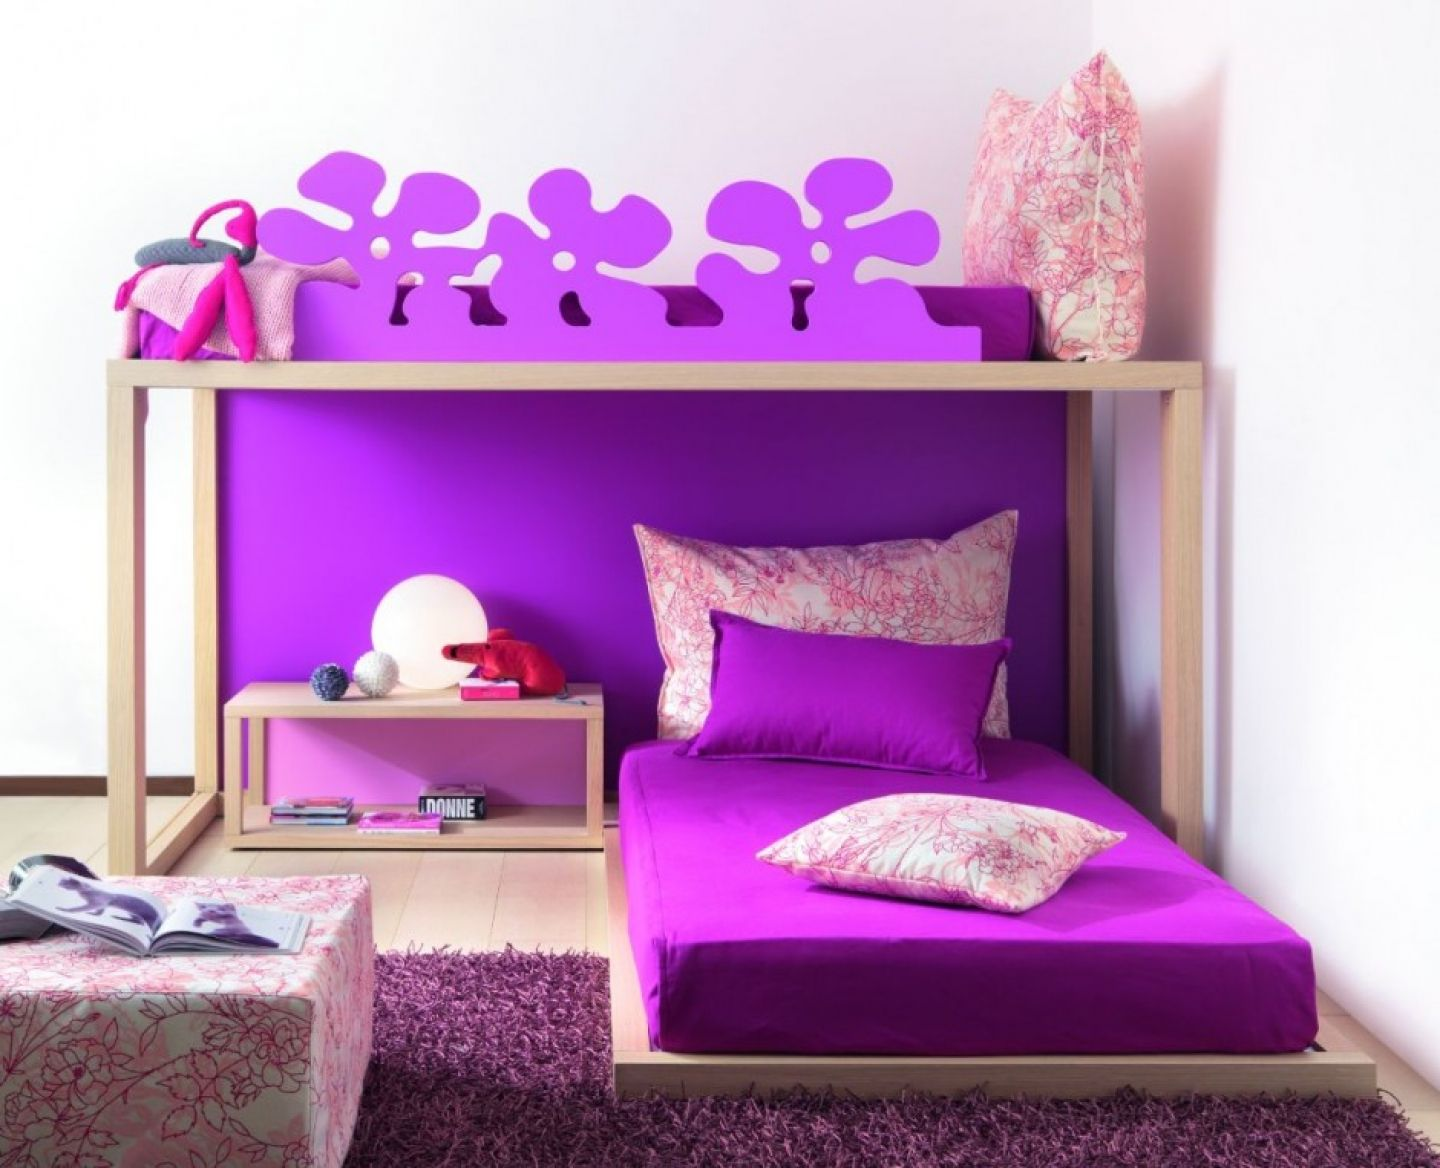 Bedroom design for girls purple - Awesome Room Decorating Ideas For Teenage Girls With Teenage Girl Bedroom Attractive Decorating Ideas For Teenage Girls Part Of Room Decorating Ideas For